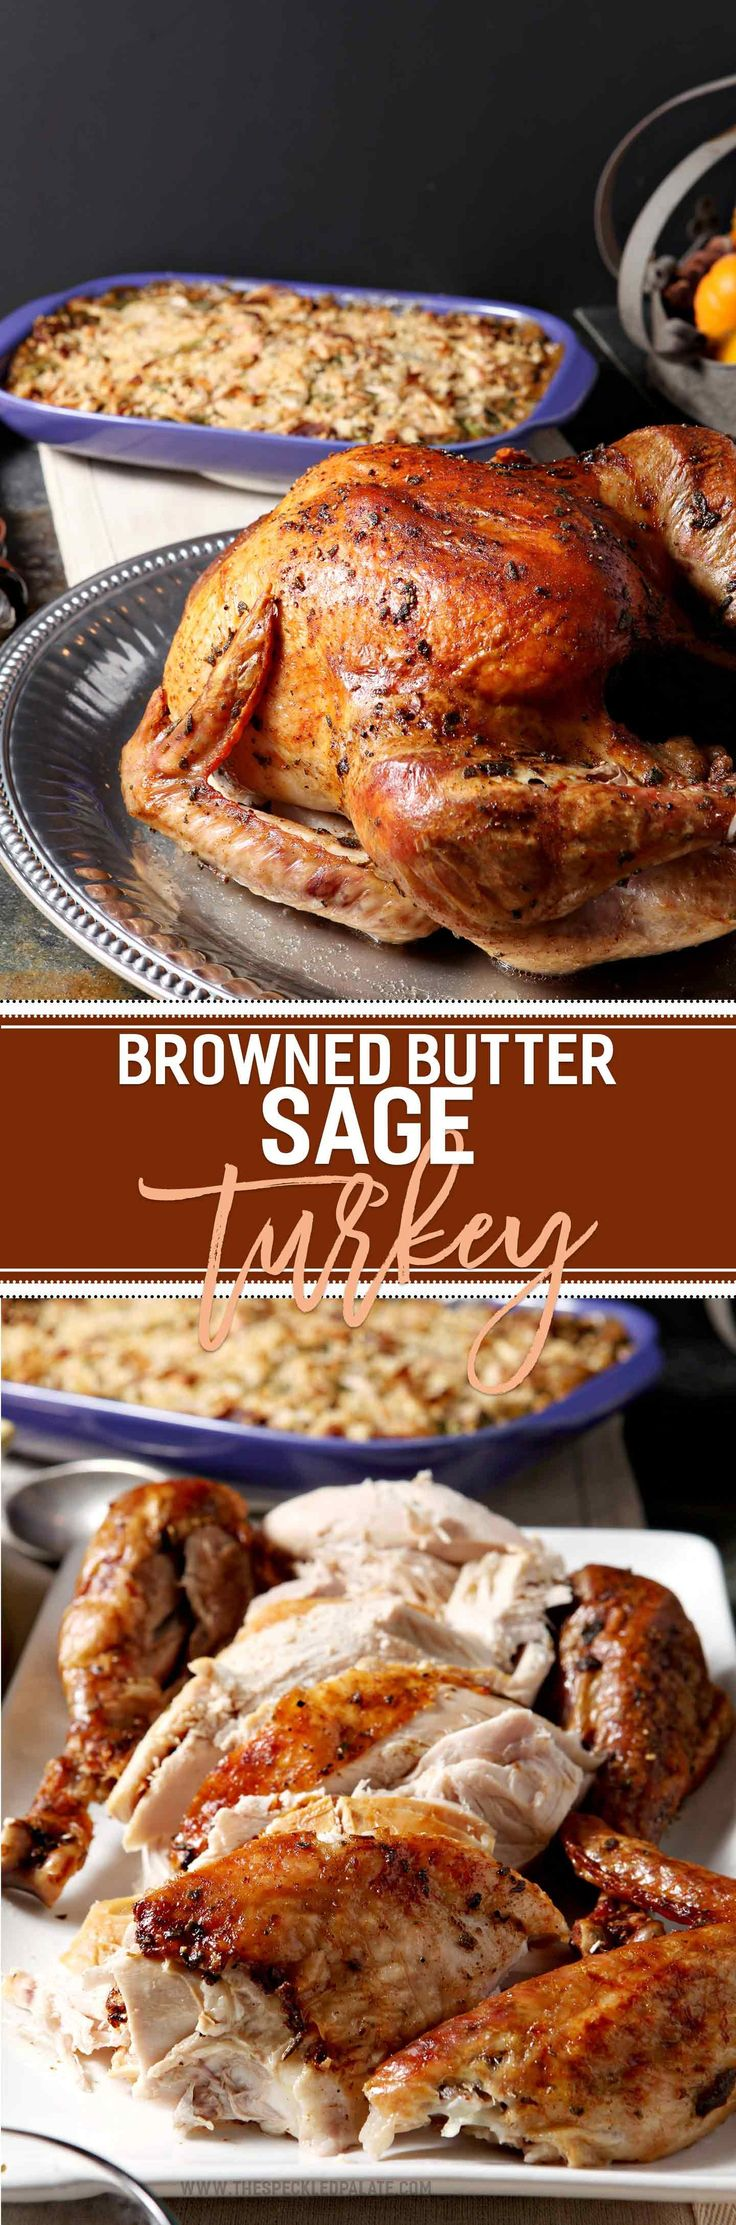 Prepare this showstopper of a Thanksgiving entree for the whole family this year! Browned Butter Sage Turkey is a twist on the classic roasted turkey. #ad #HonestSimpleTurkey